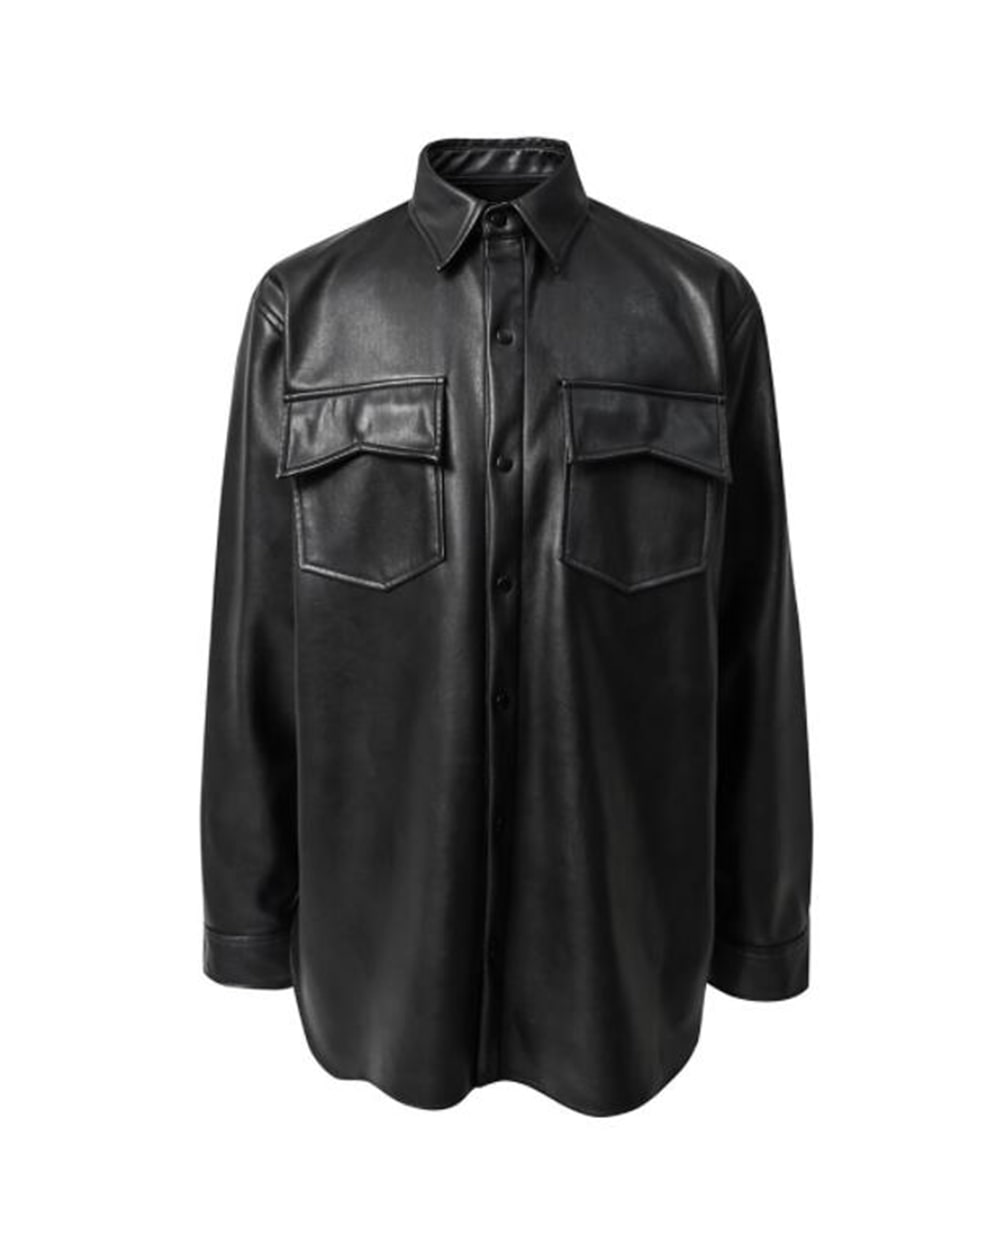 ATE STUDIOS ARTIFICIAL LEATHER POCKET SHIRTS JACKET (Black)